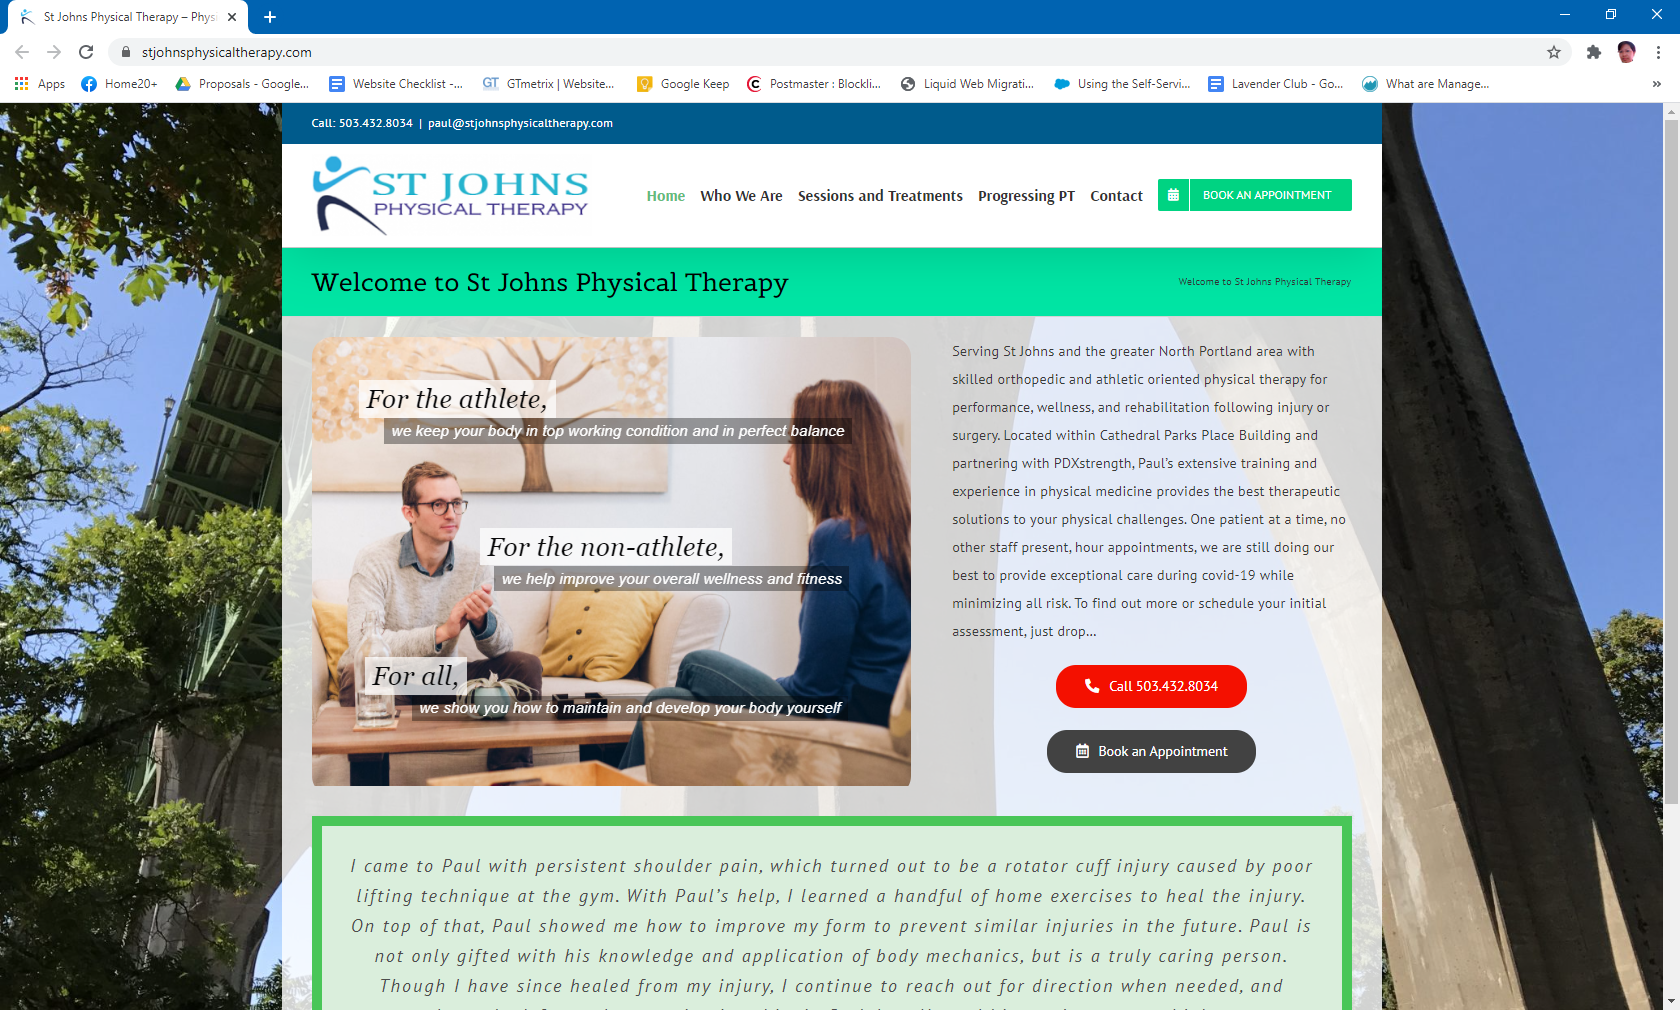 St Johns Physical Therapy